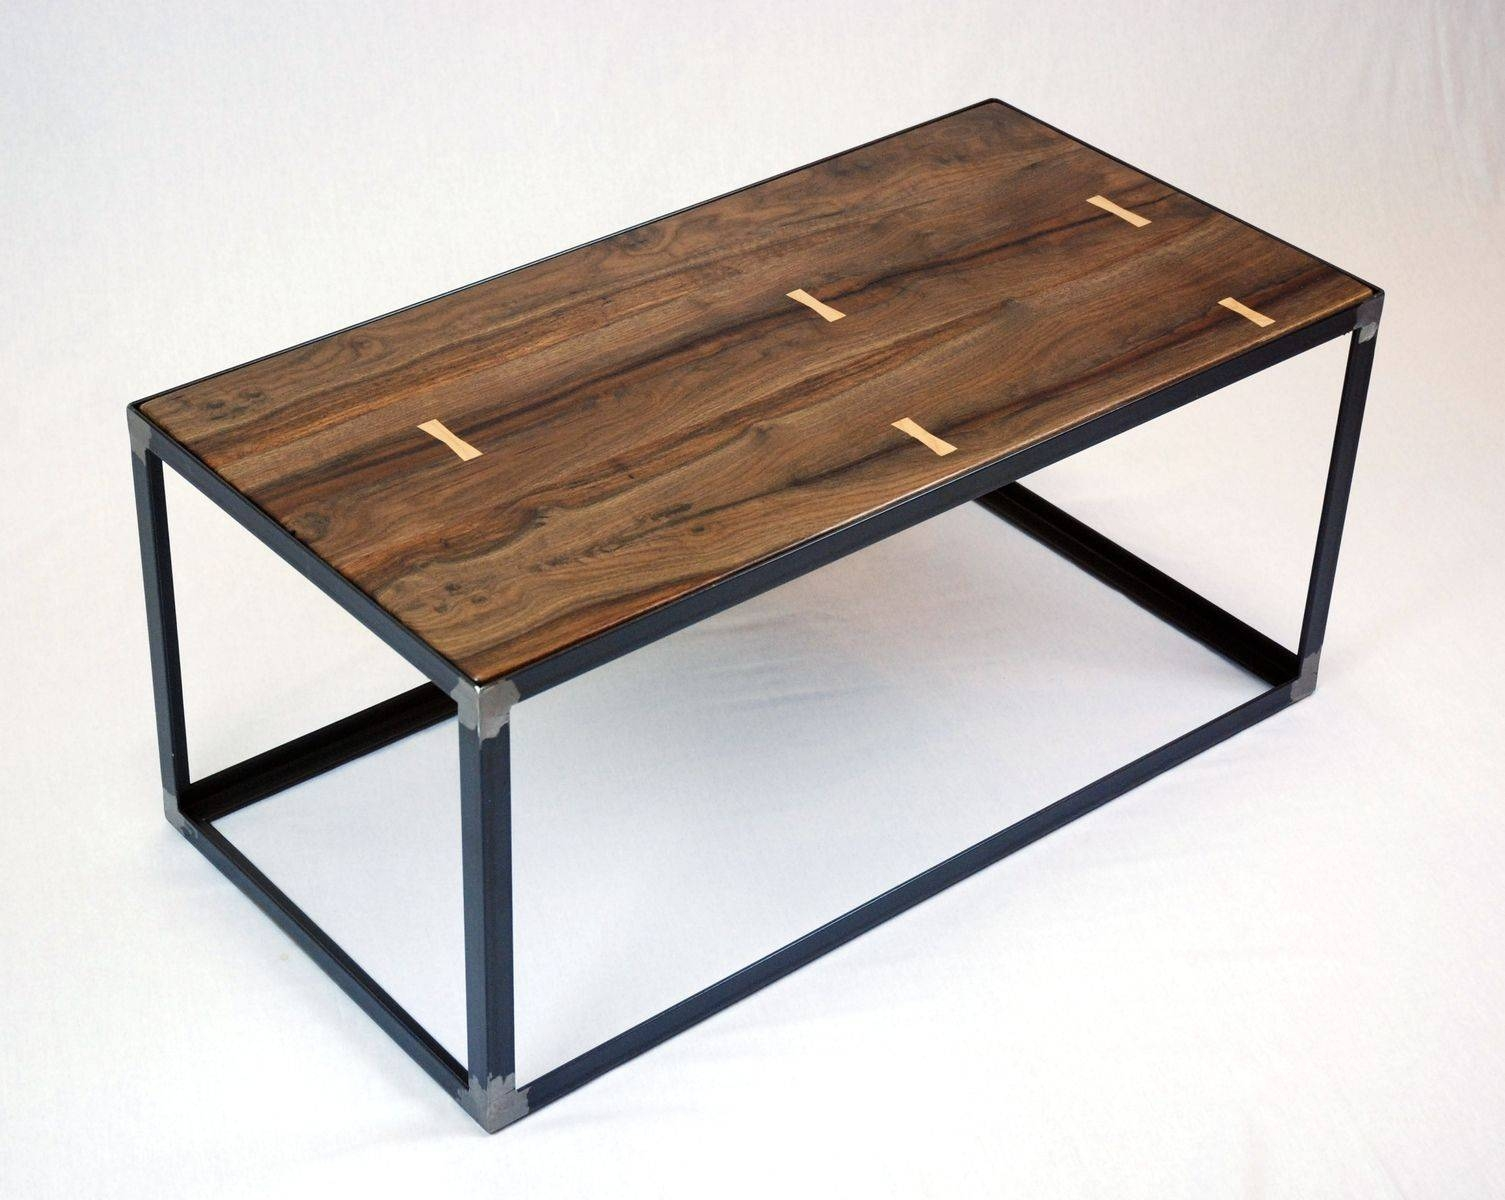 Hand Crafted Salvaged Black Walnut Industrial Coffee Table pertaining to Industrial Coffee Tables (Image 5 of 15)